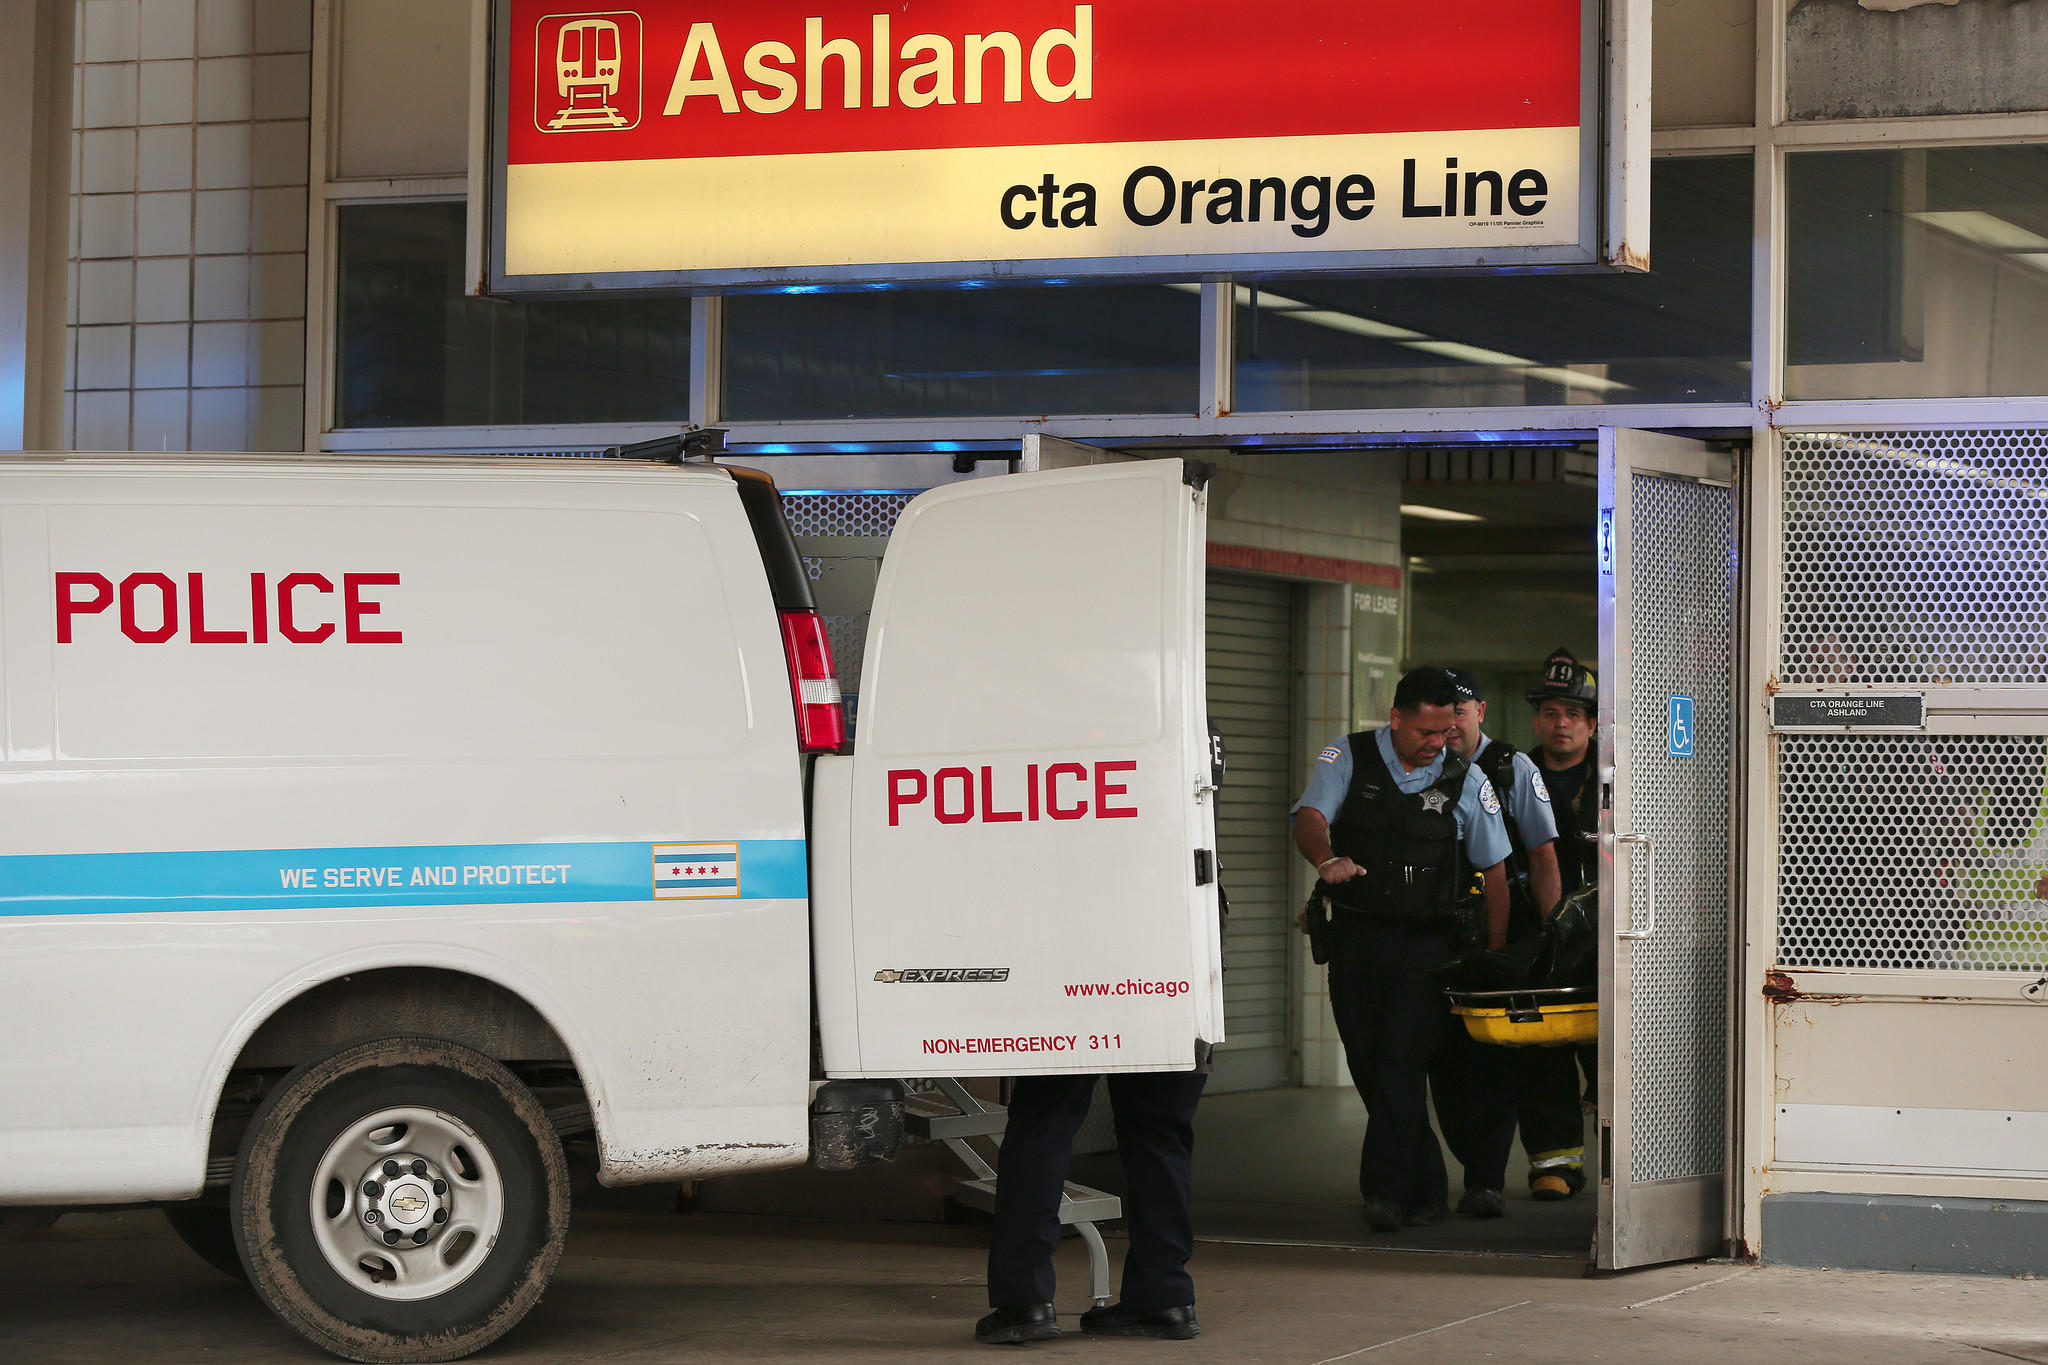 Police and firefighters transport the body of a man who was struck and killed by a CTA Orange Line train at the Ashland Avenue CTA Orange Line station in Chicago.